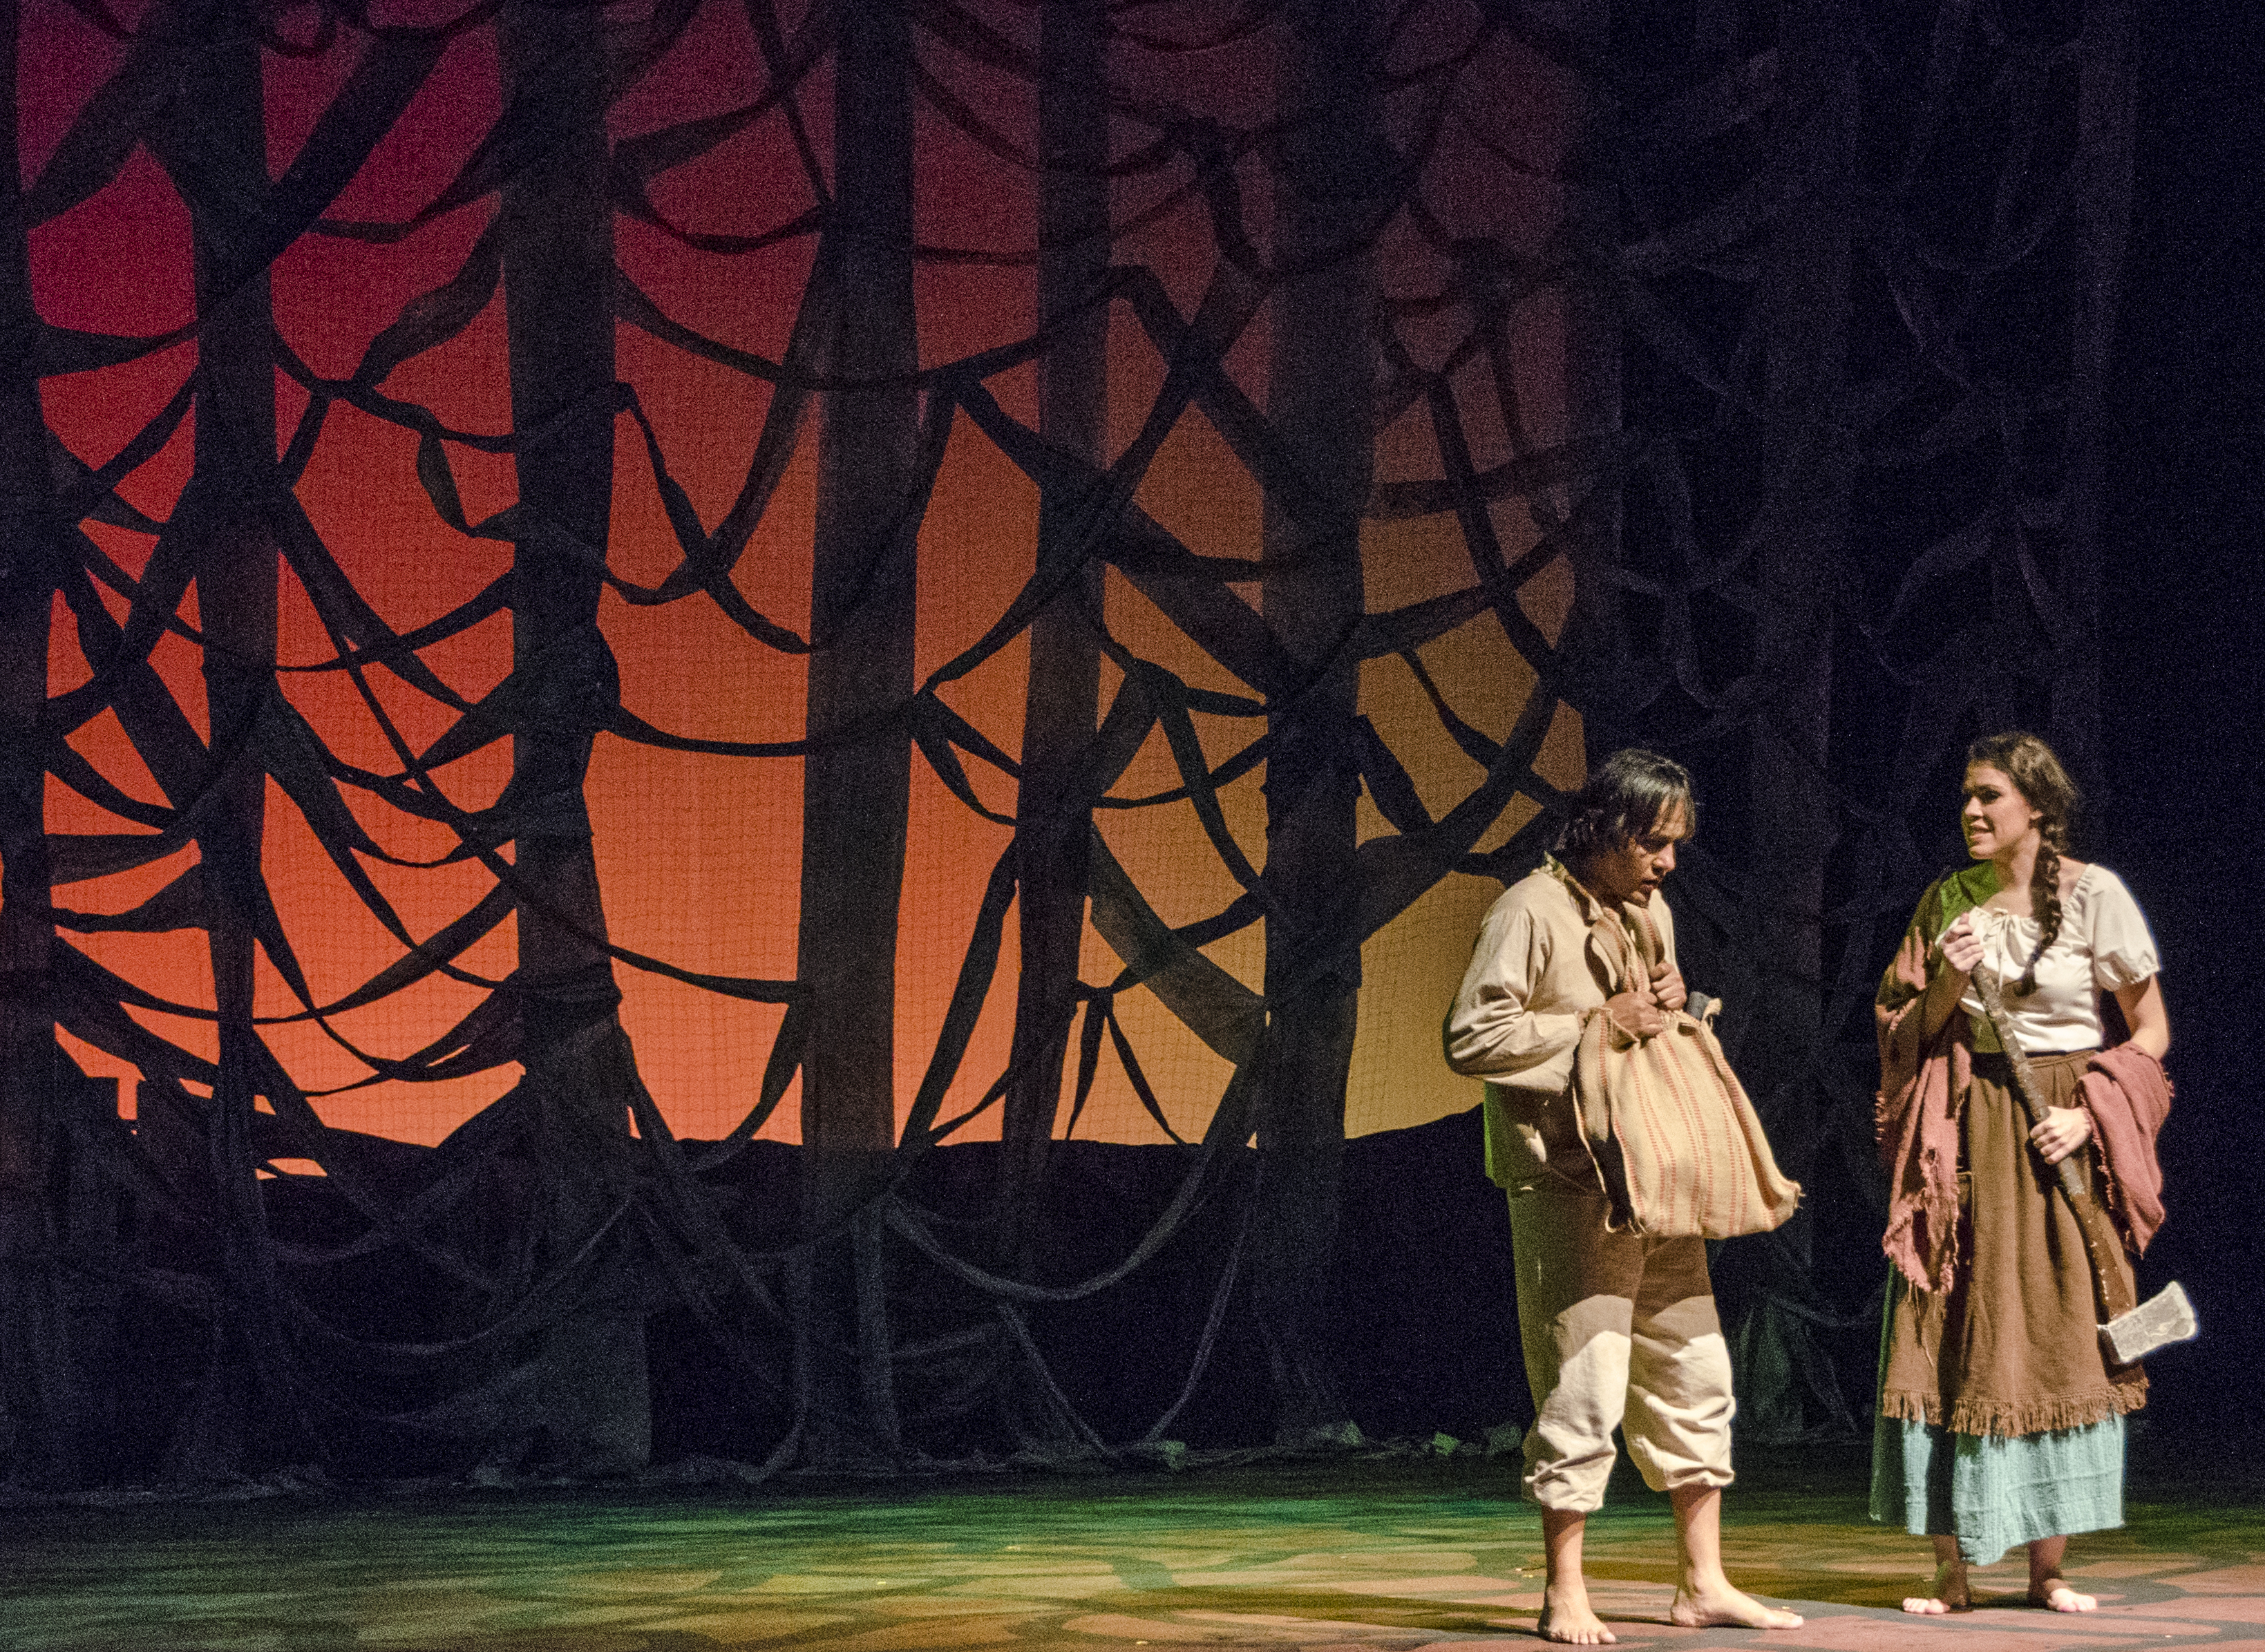 Scene from Macario - Macario and his wife stand in front of a fabric forest drop